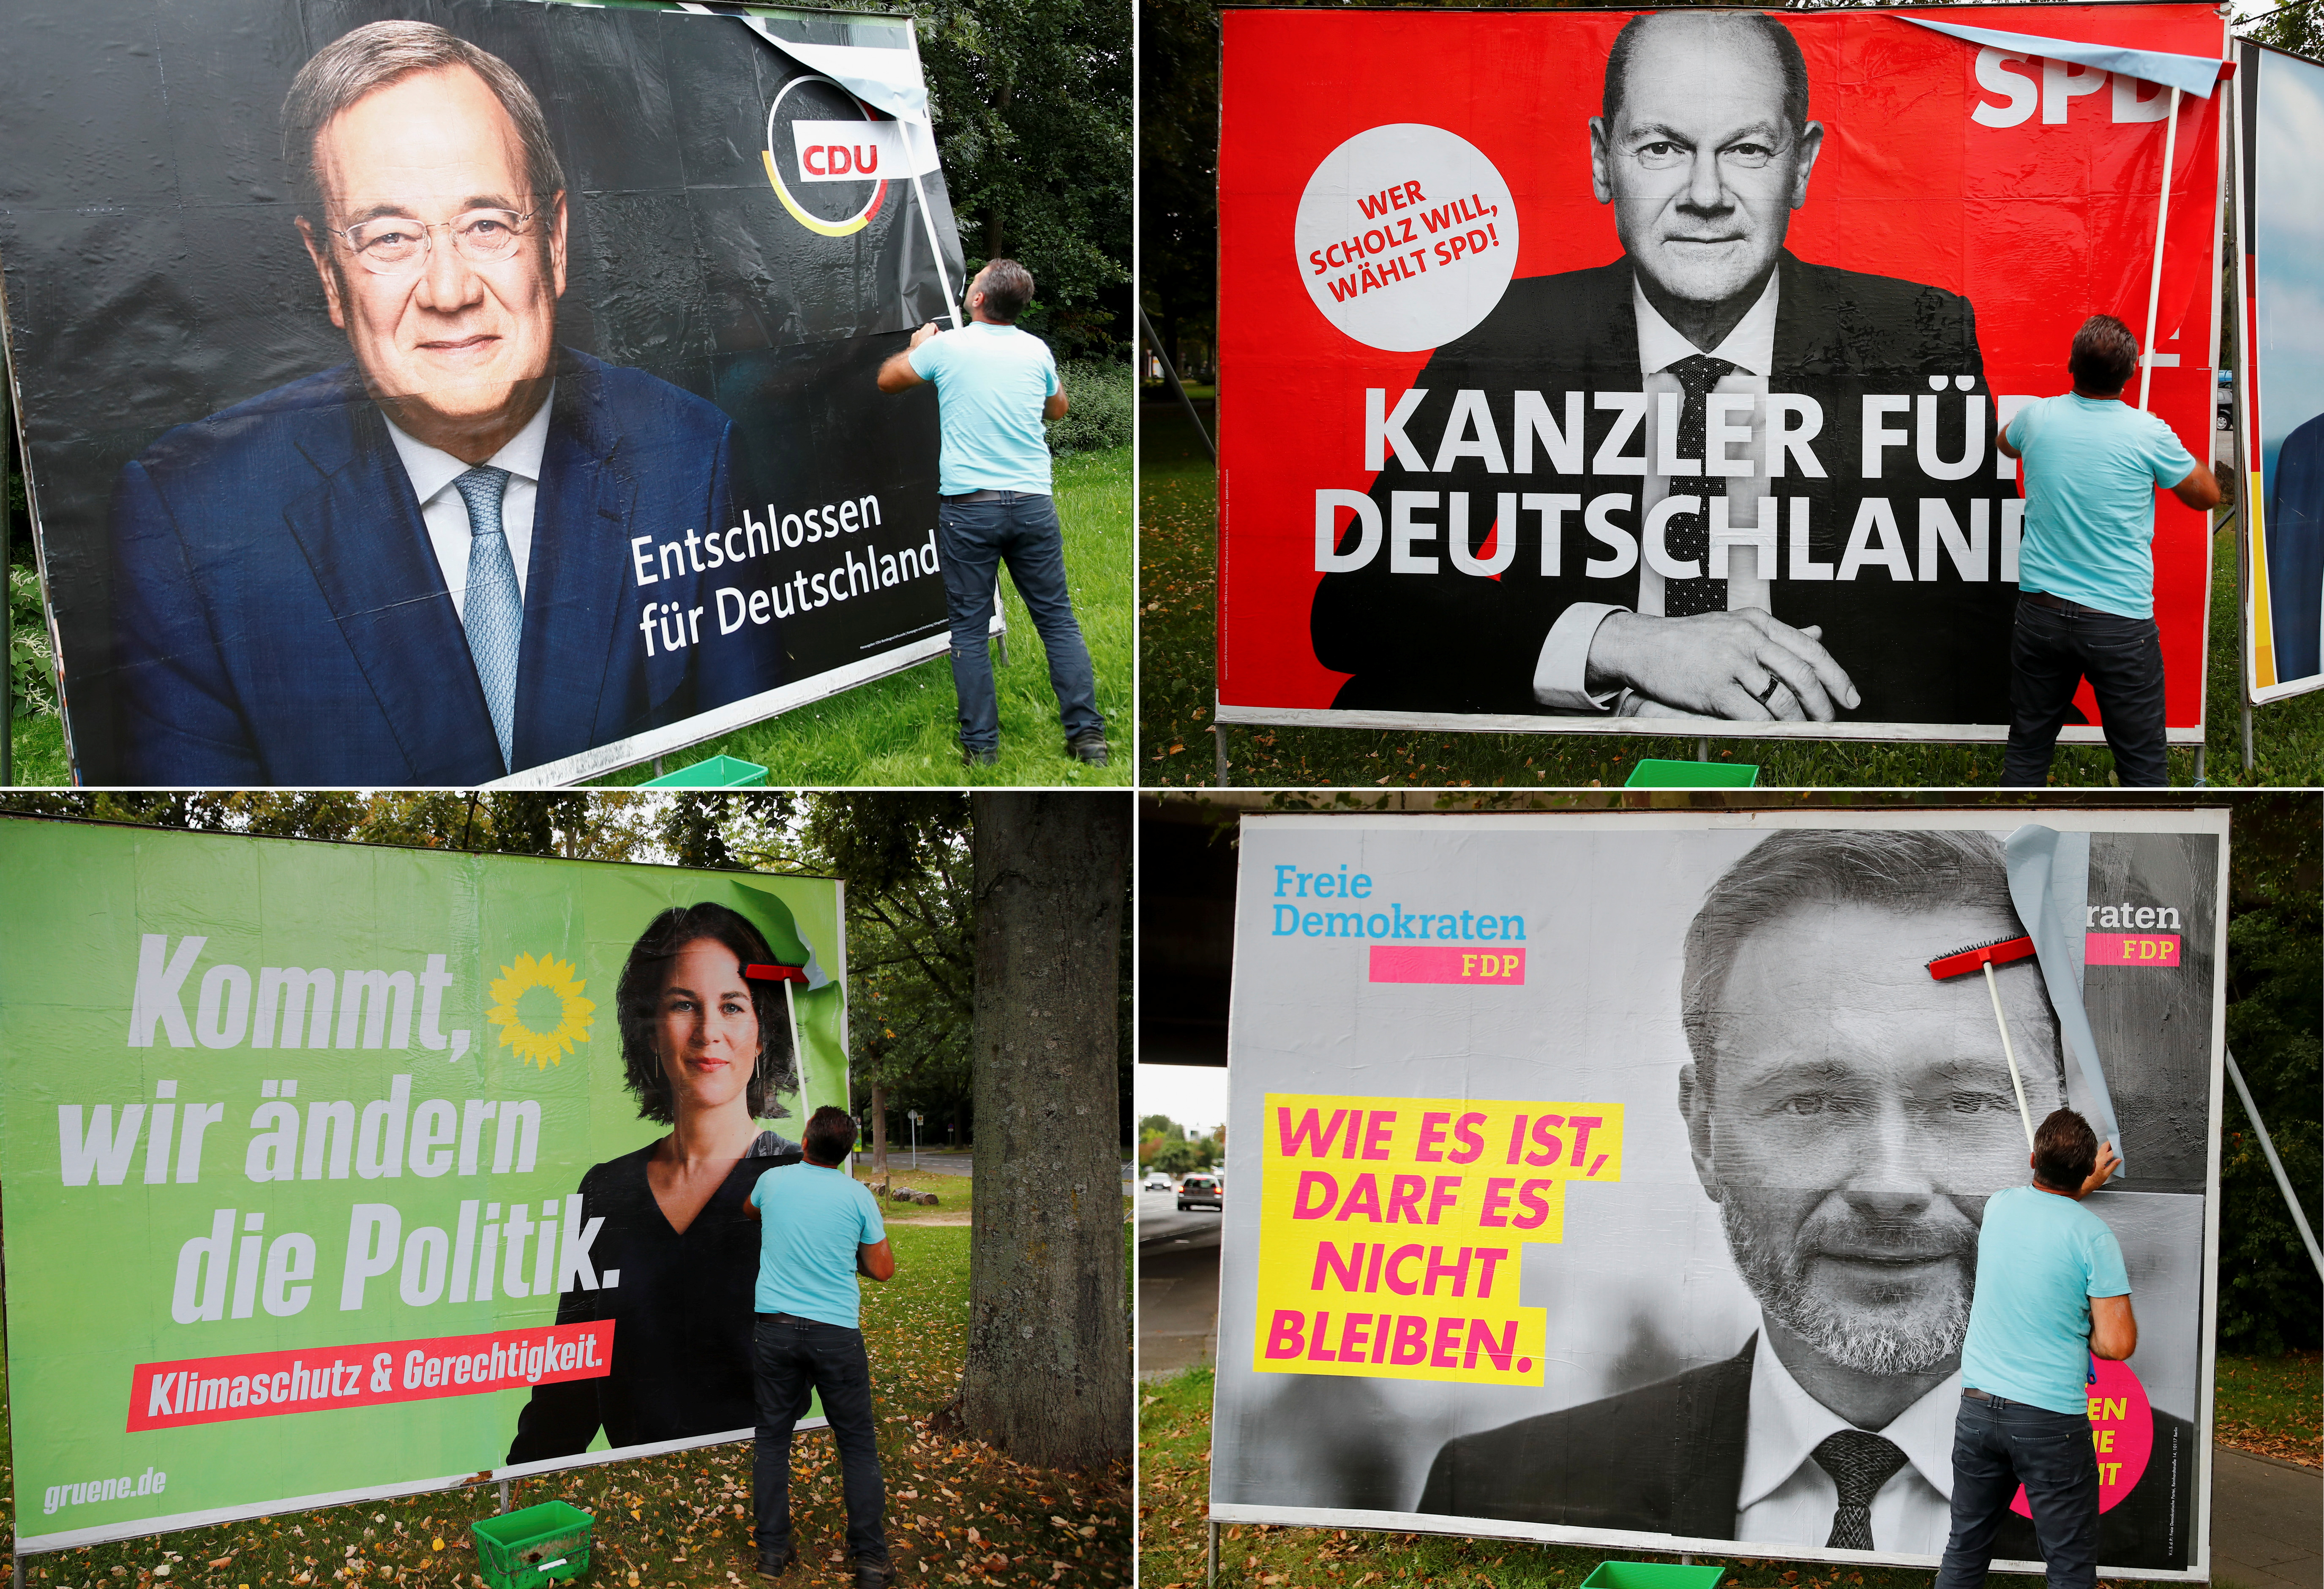 A combination of four images shows placards of Germany's top candidates for the September 26 German general elections being placed on large boards. The top row shows Armin Laschet of the Christian Democratic Union Party CDU and Olaf Scholz of Germany's Social Democratic Party SPD. The bottom row shows Greens Party candidate Annalena Baerbock and Christian Lindner of the Free Democratic Party FDP, in Bonn, Germany, September 20, 2021.  REUTERS/Wolfgang Rattay